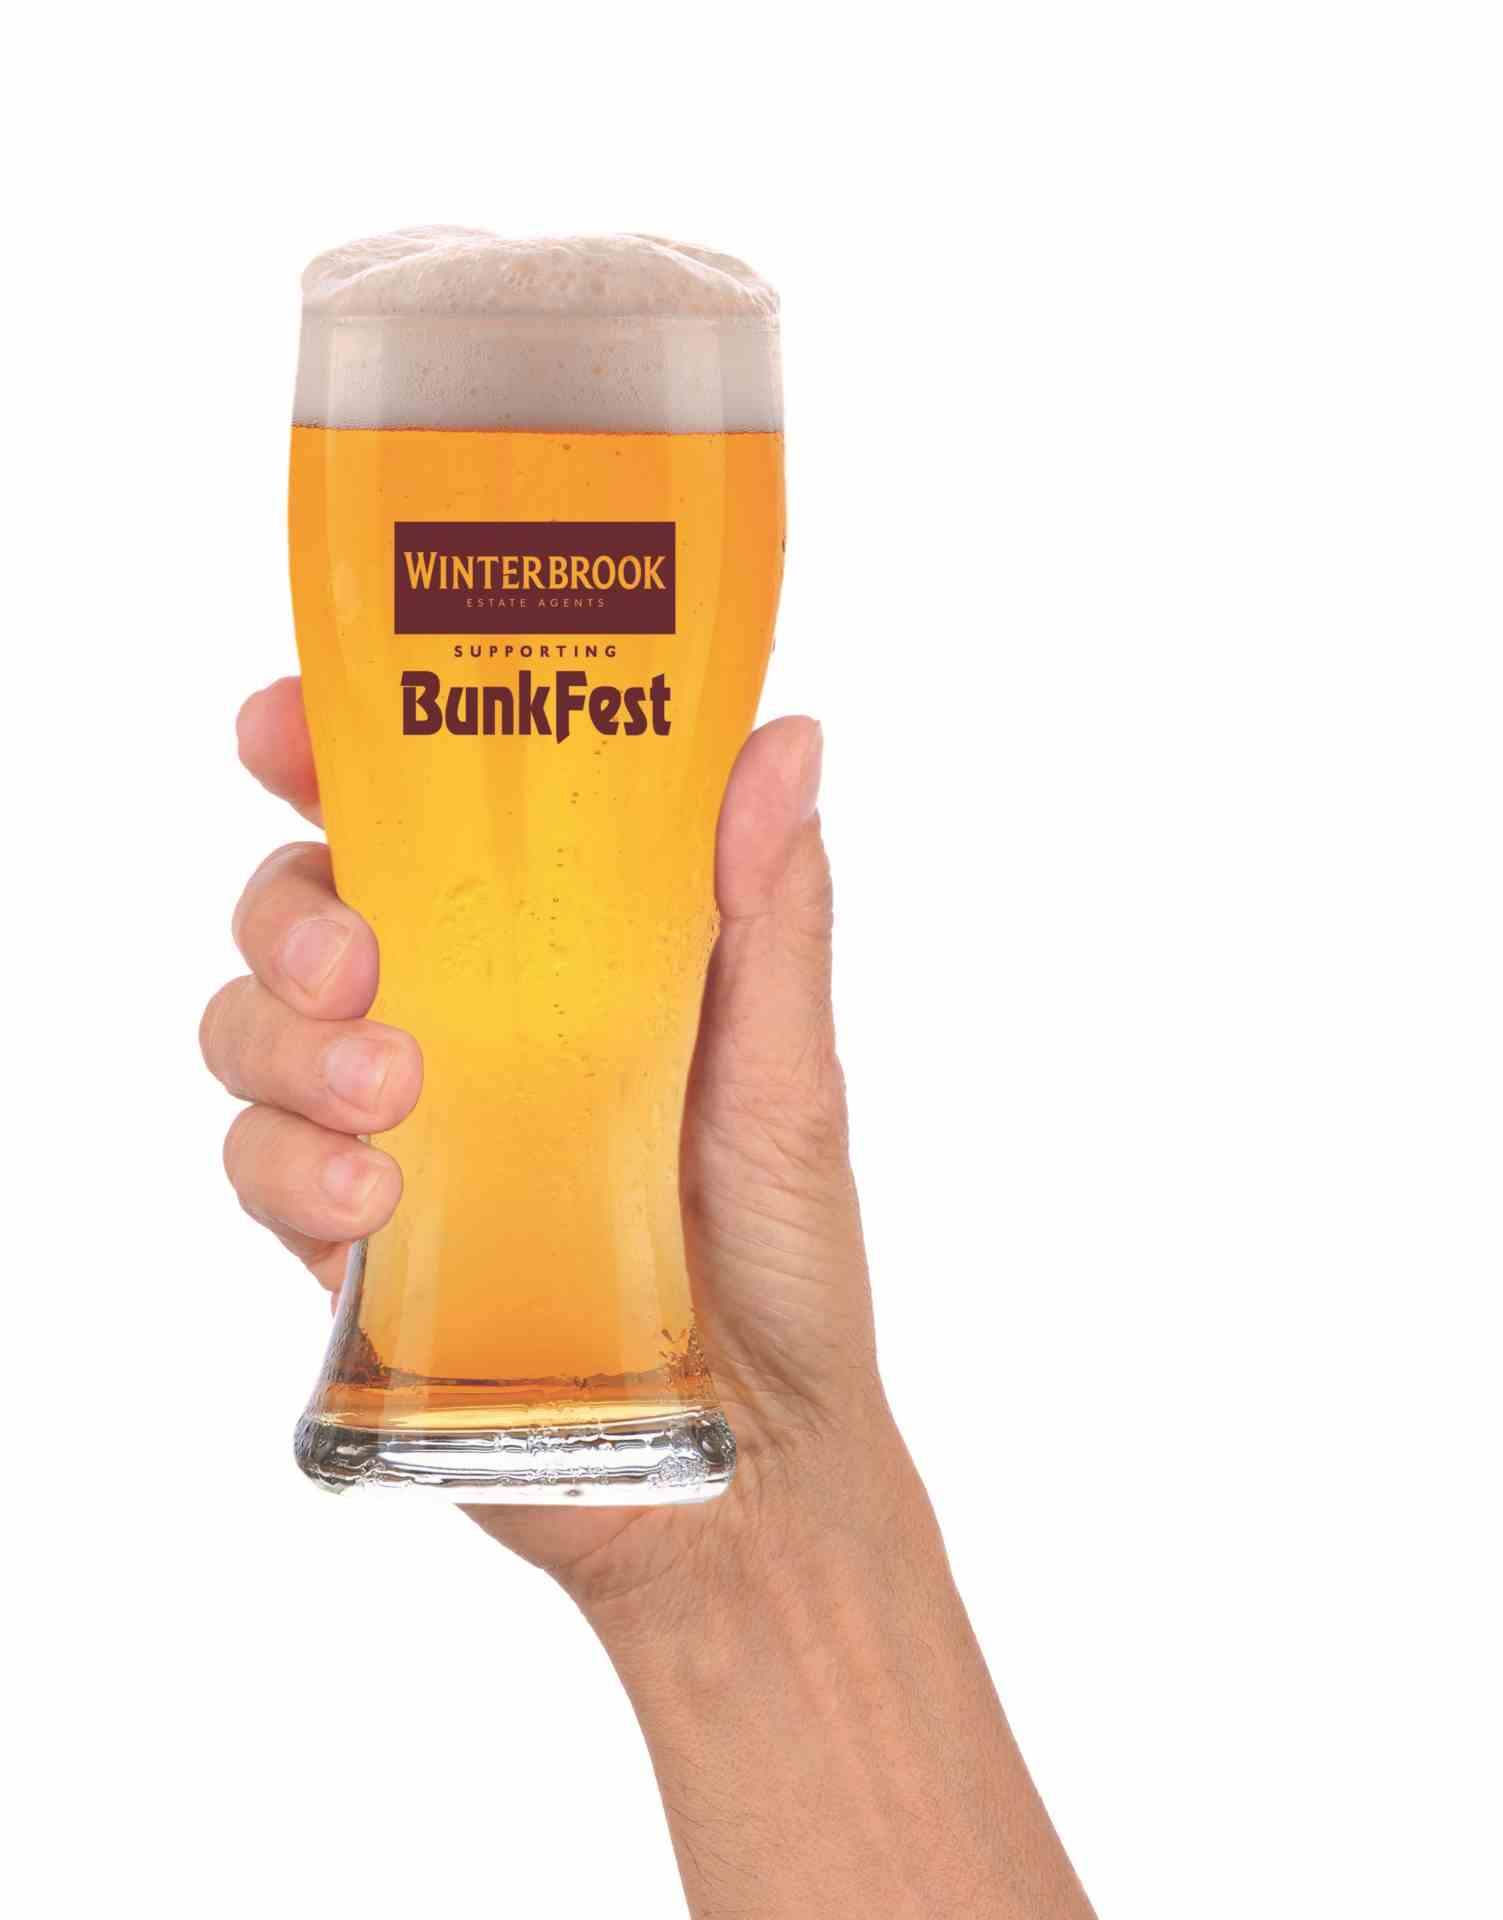 Collect your 2016 Bunkfest beer glass early